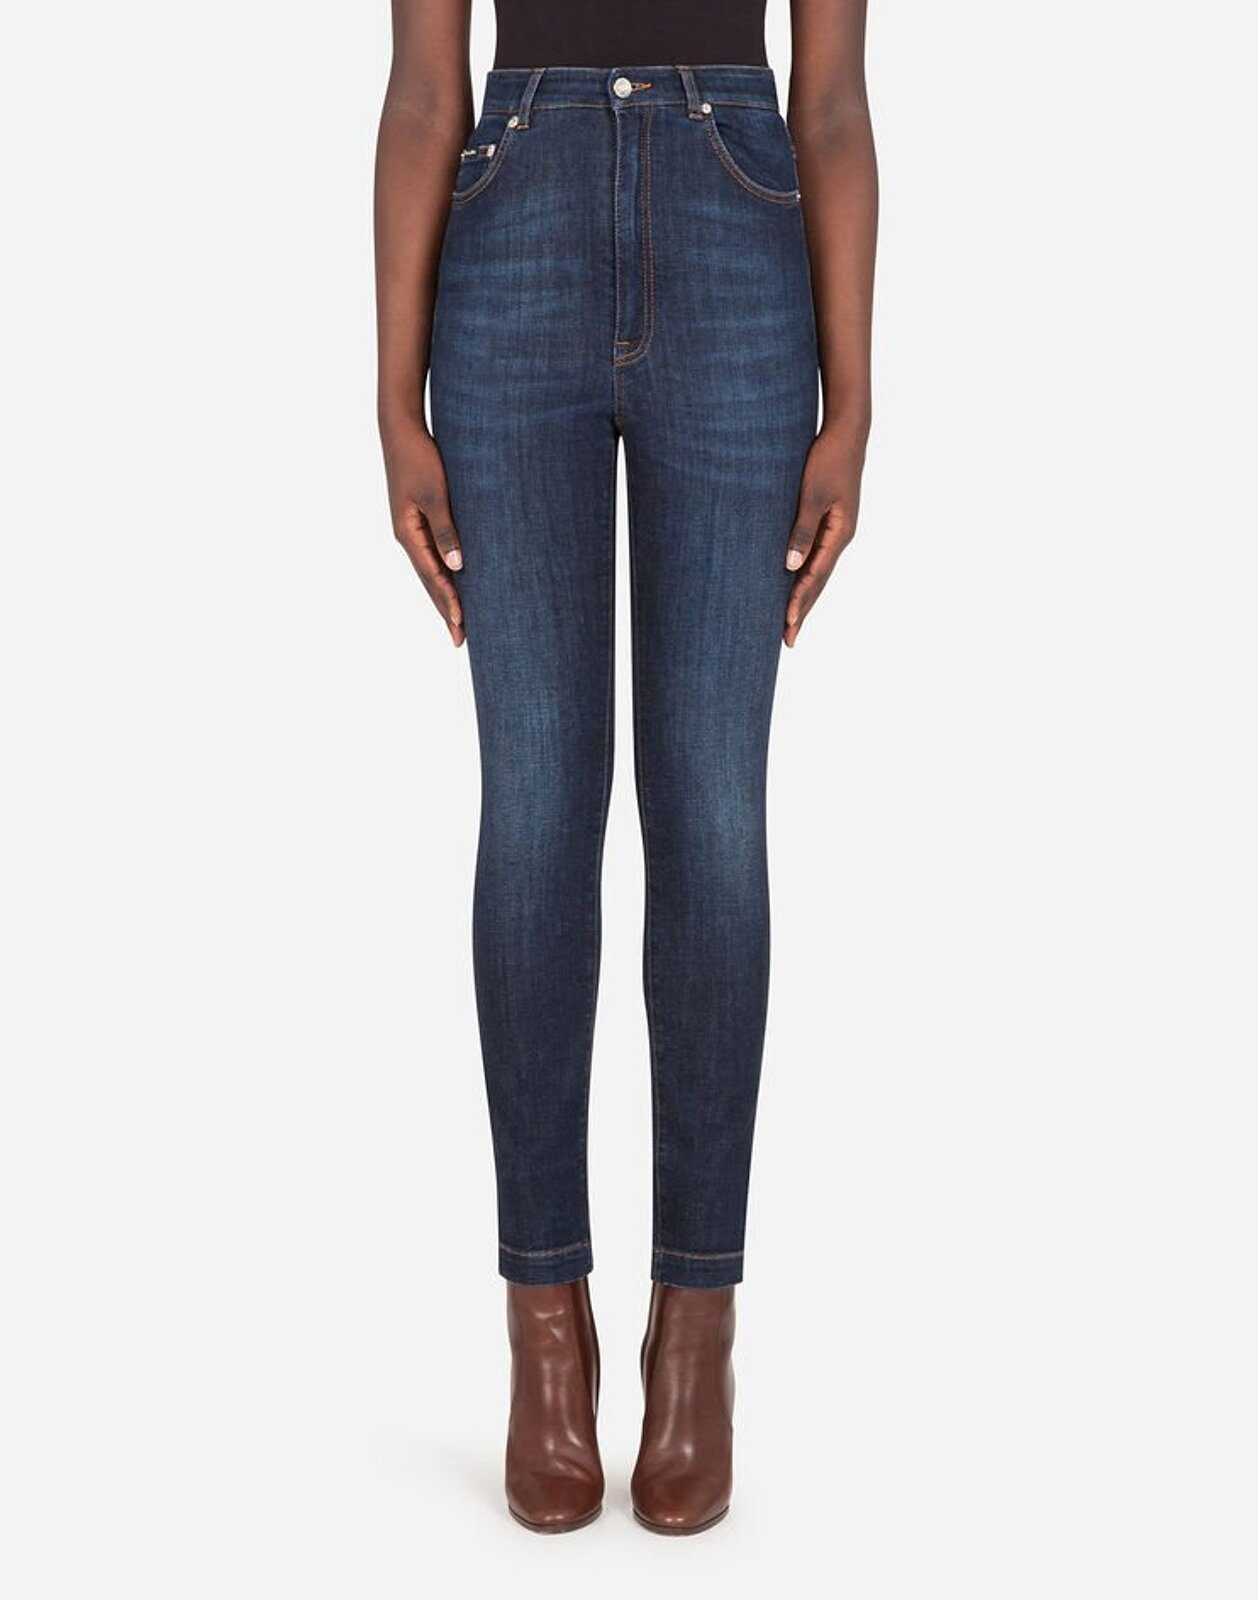 Jeans Vita Alta In Denim Deep Blue - Dolce & Gabbana